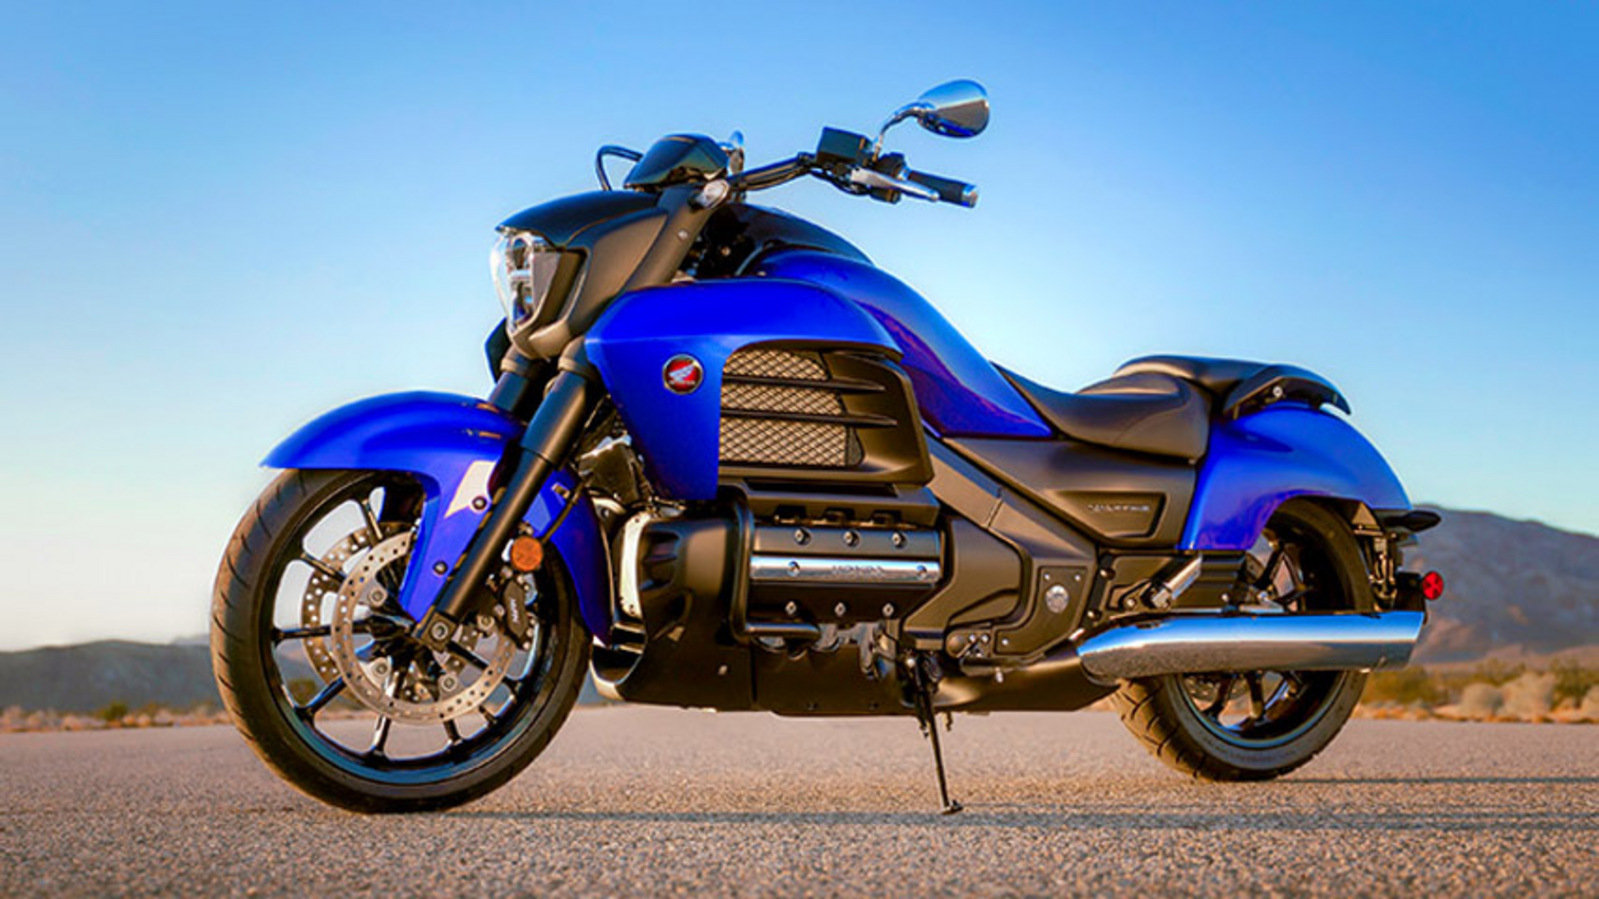 2014 Honda Gold Wing Valkyrie Review - Top Speed